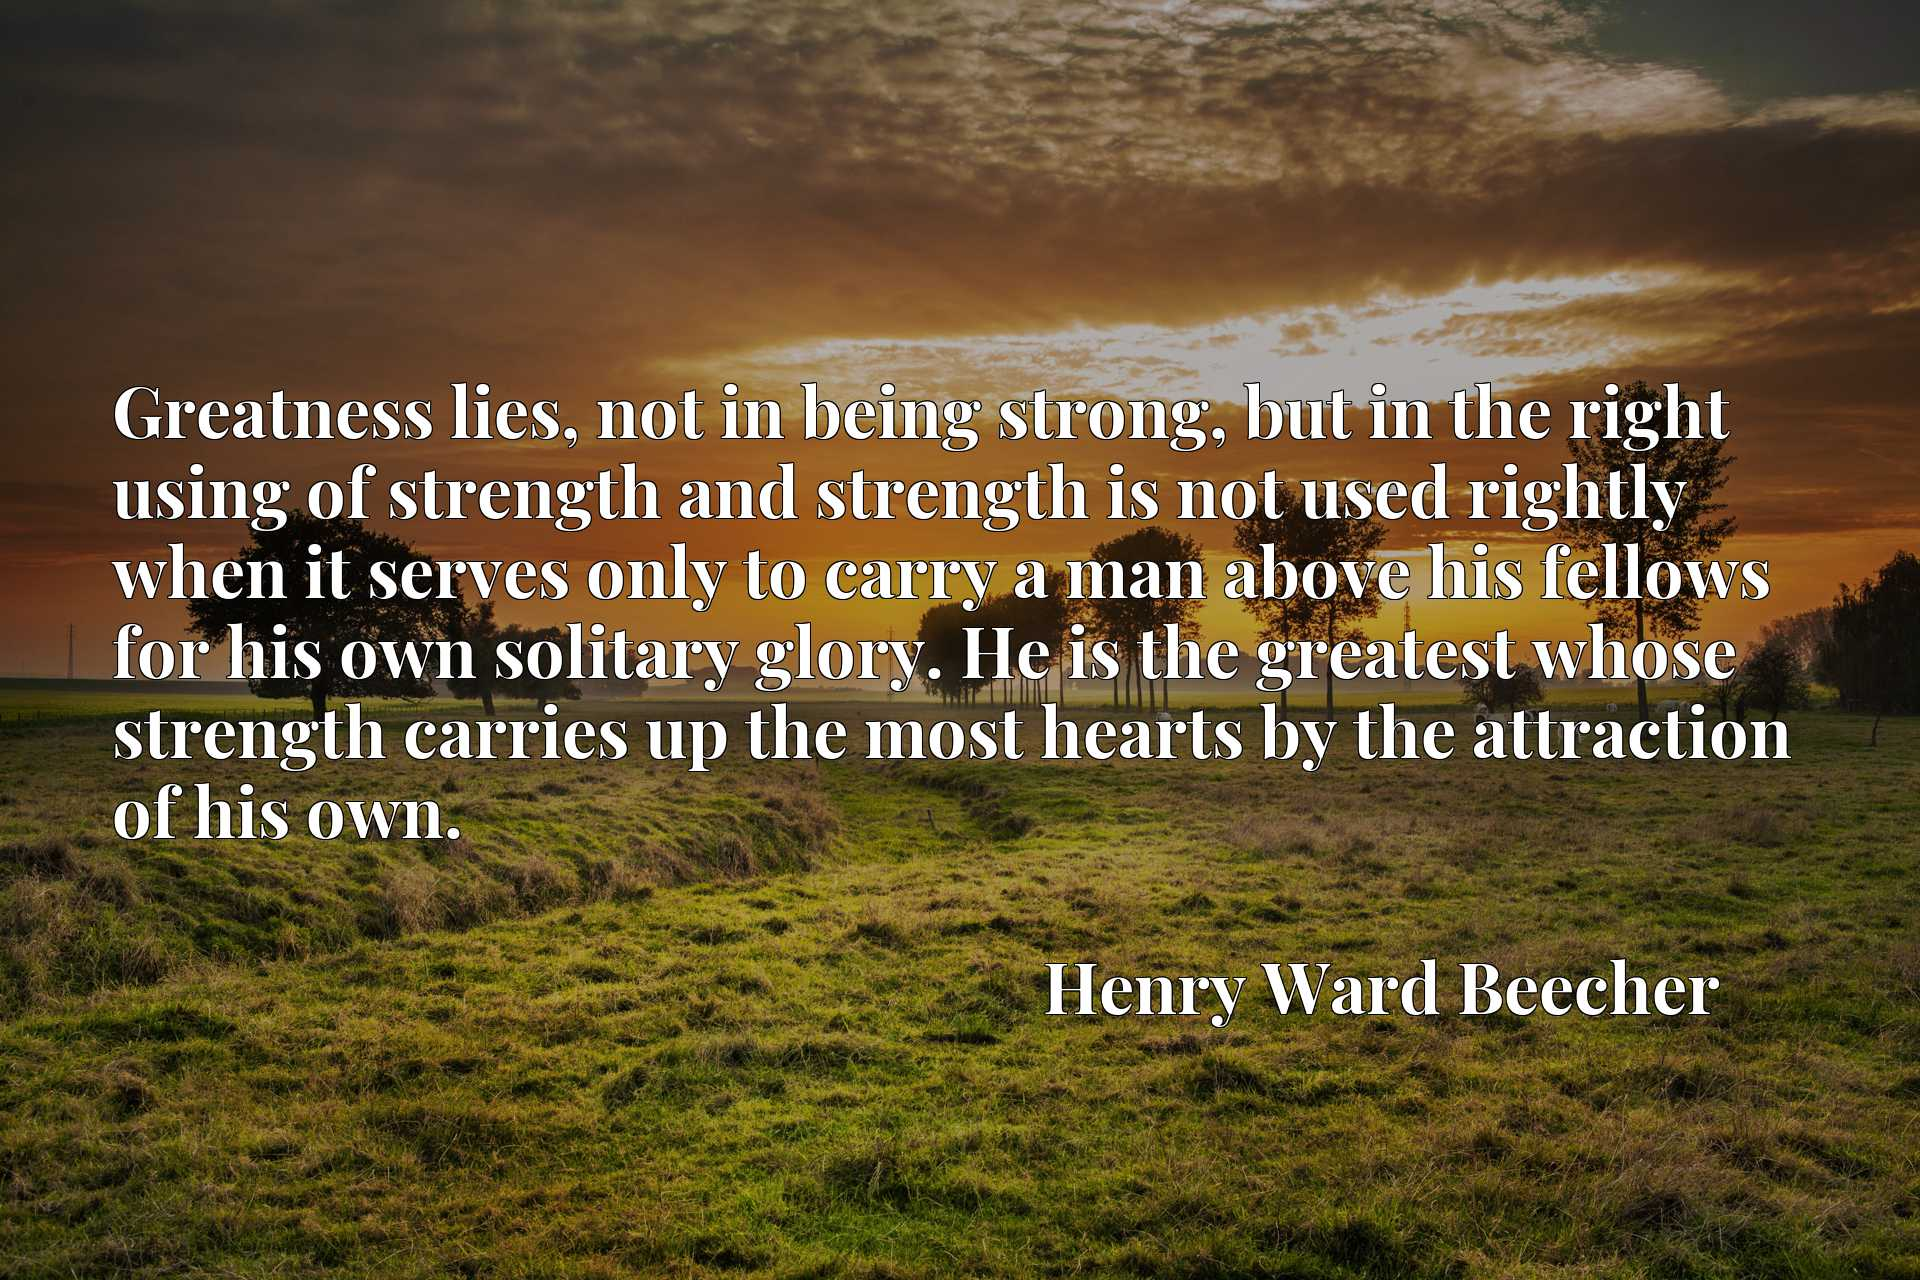 Greatness lies, not in being strong, but in the right using of strength and strength is not used rightly when it serves only to carry a man above his fellows for his own solitary glory. He is the greatest whose strength carries up the most hearts by the attraction of his own.